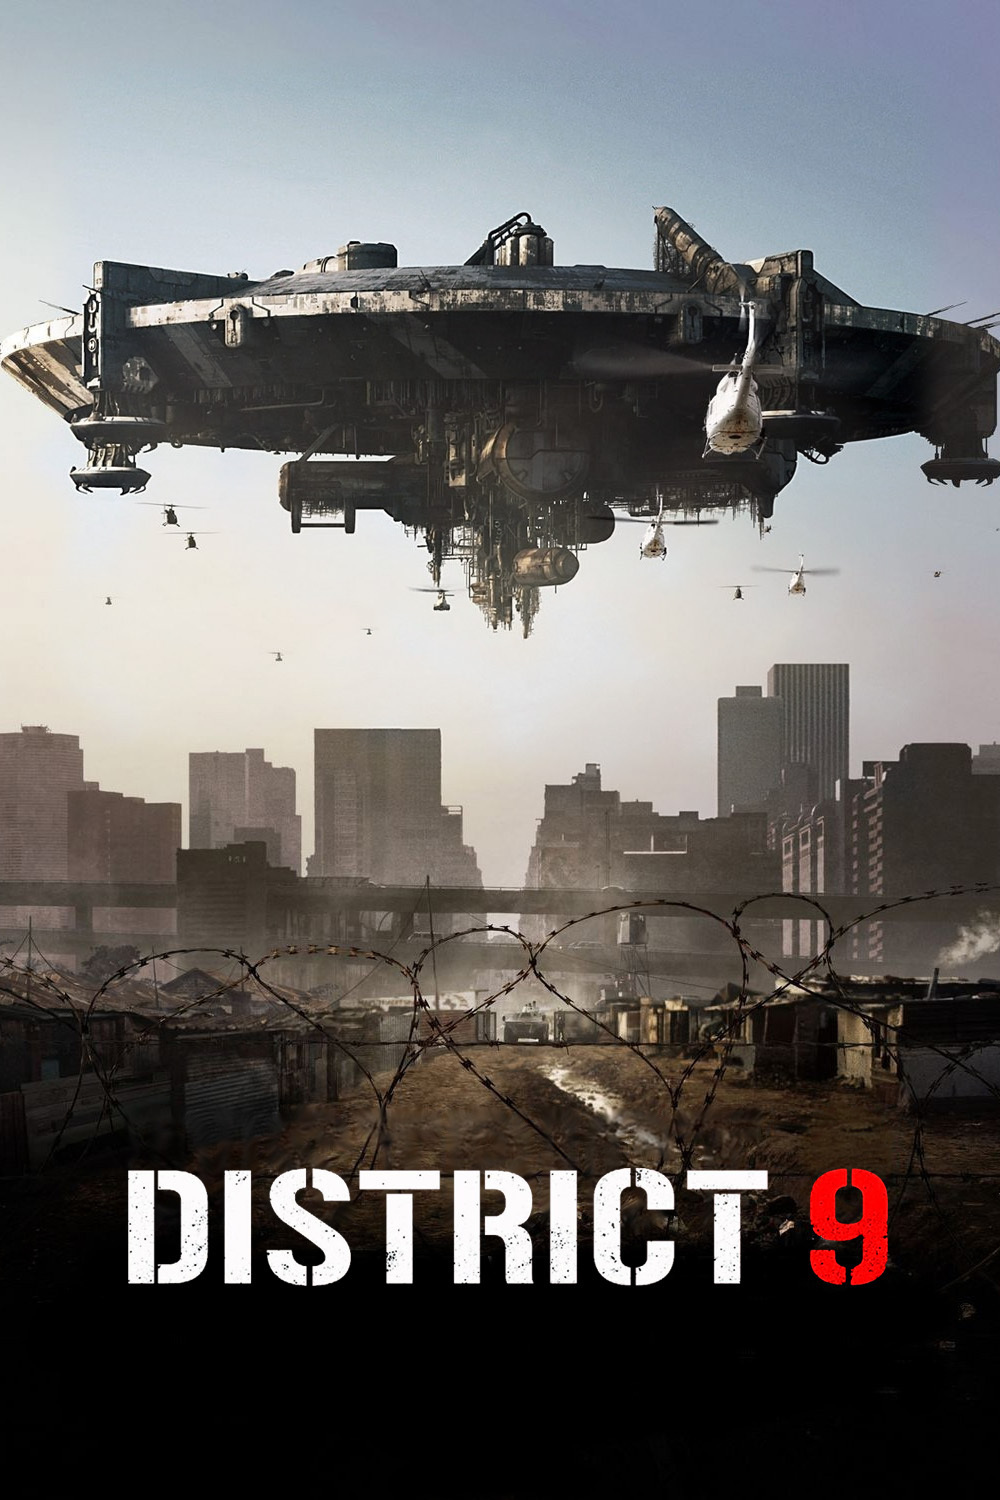 district 9 computer wallpapers - photo #15